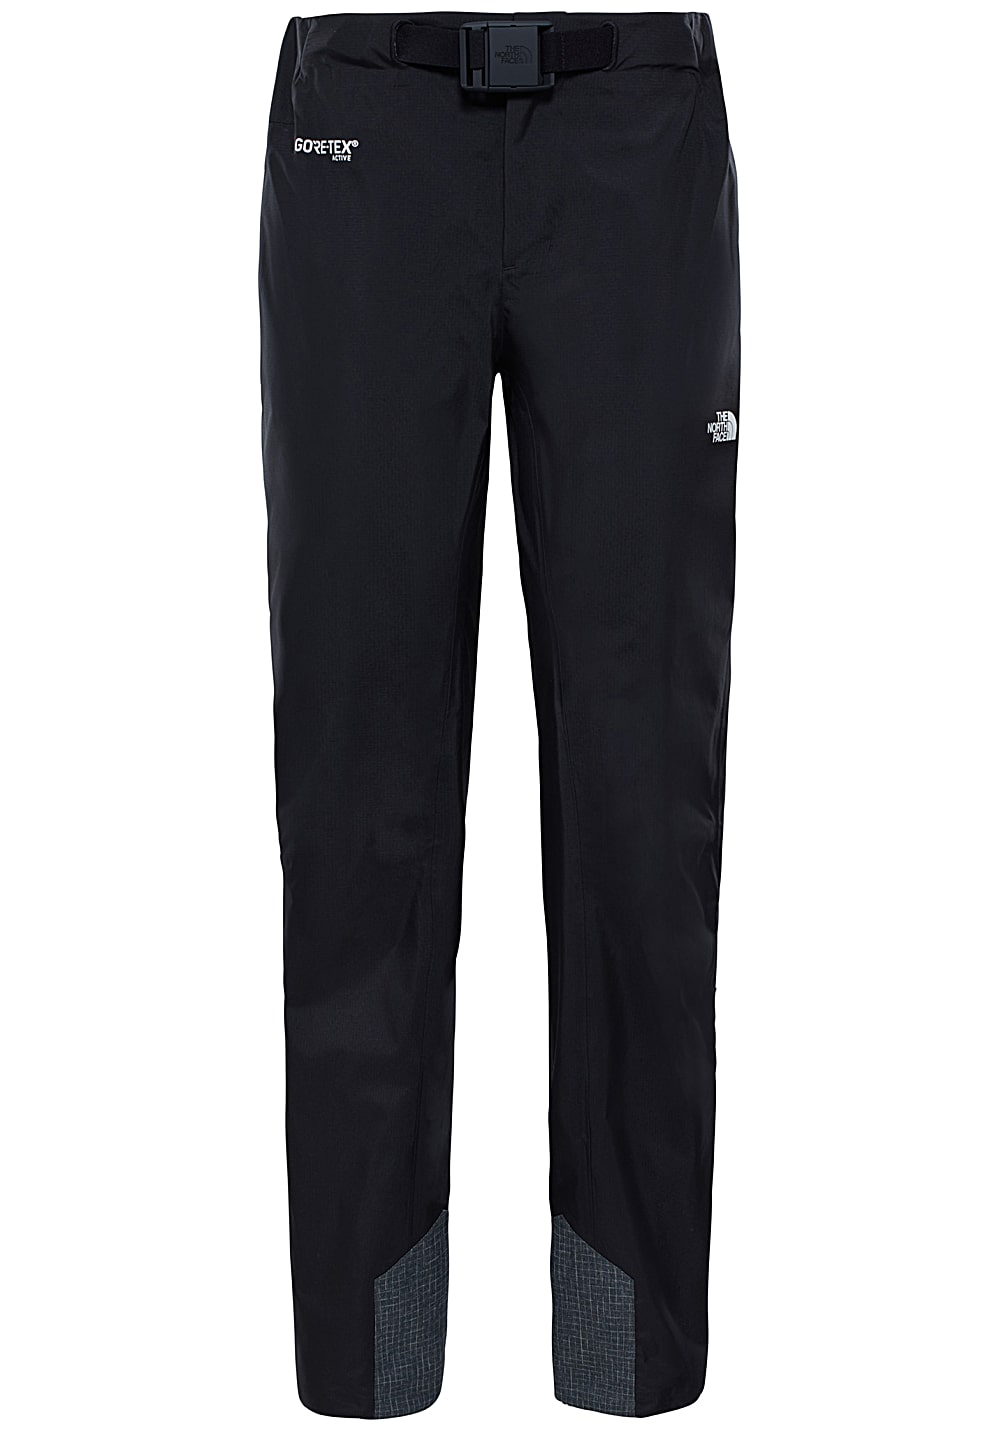 THE NORTH FACE Shinpuru II - Outdoorhose für Damen - Schwarz